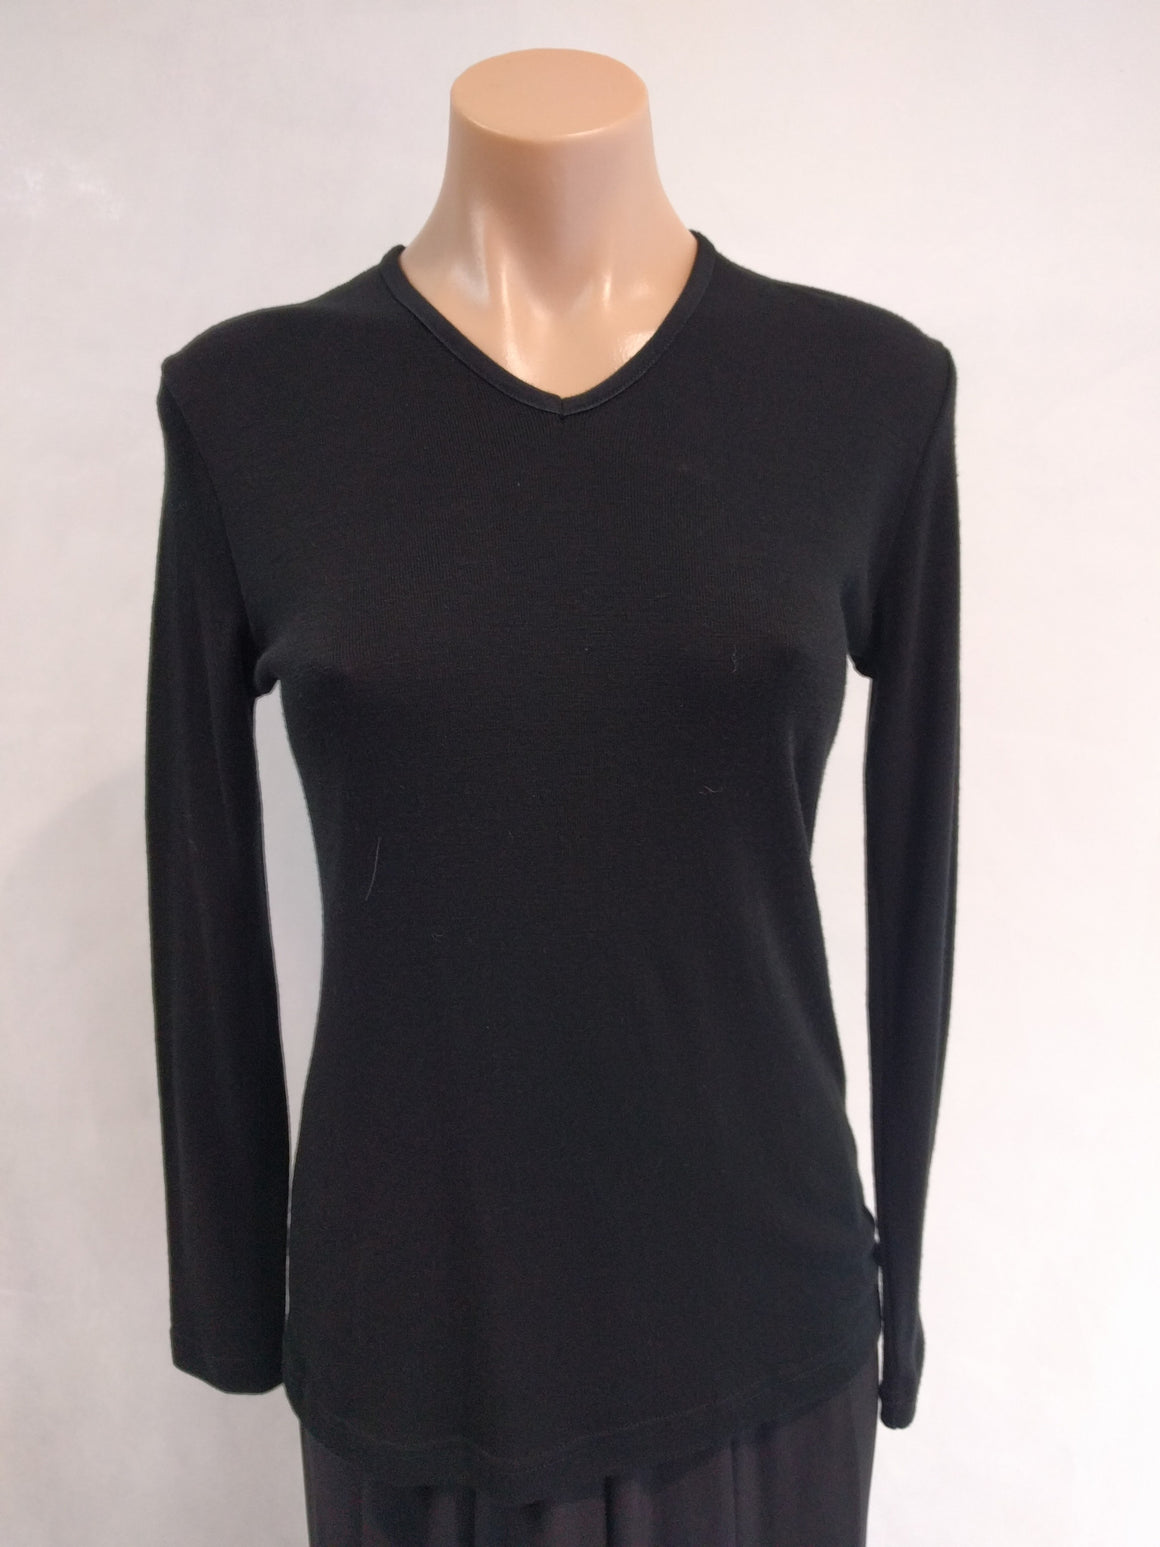 Bay Road V Neck Merino Top (BR 815) - Fashion Focus